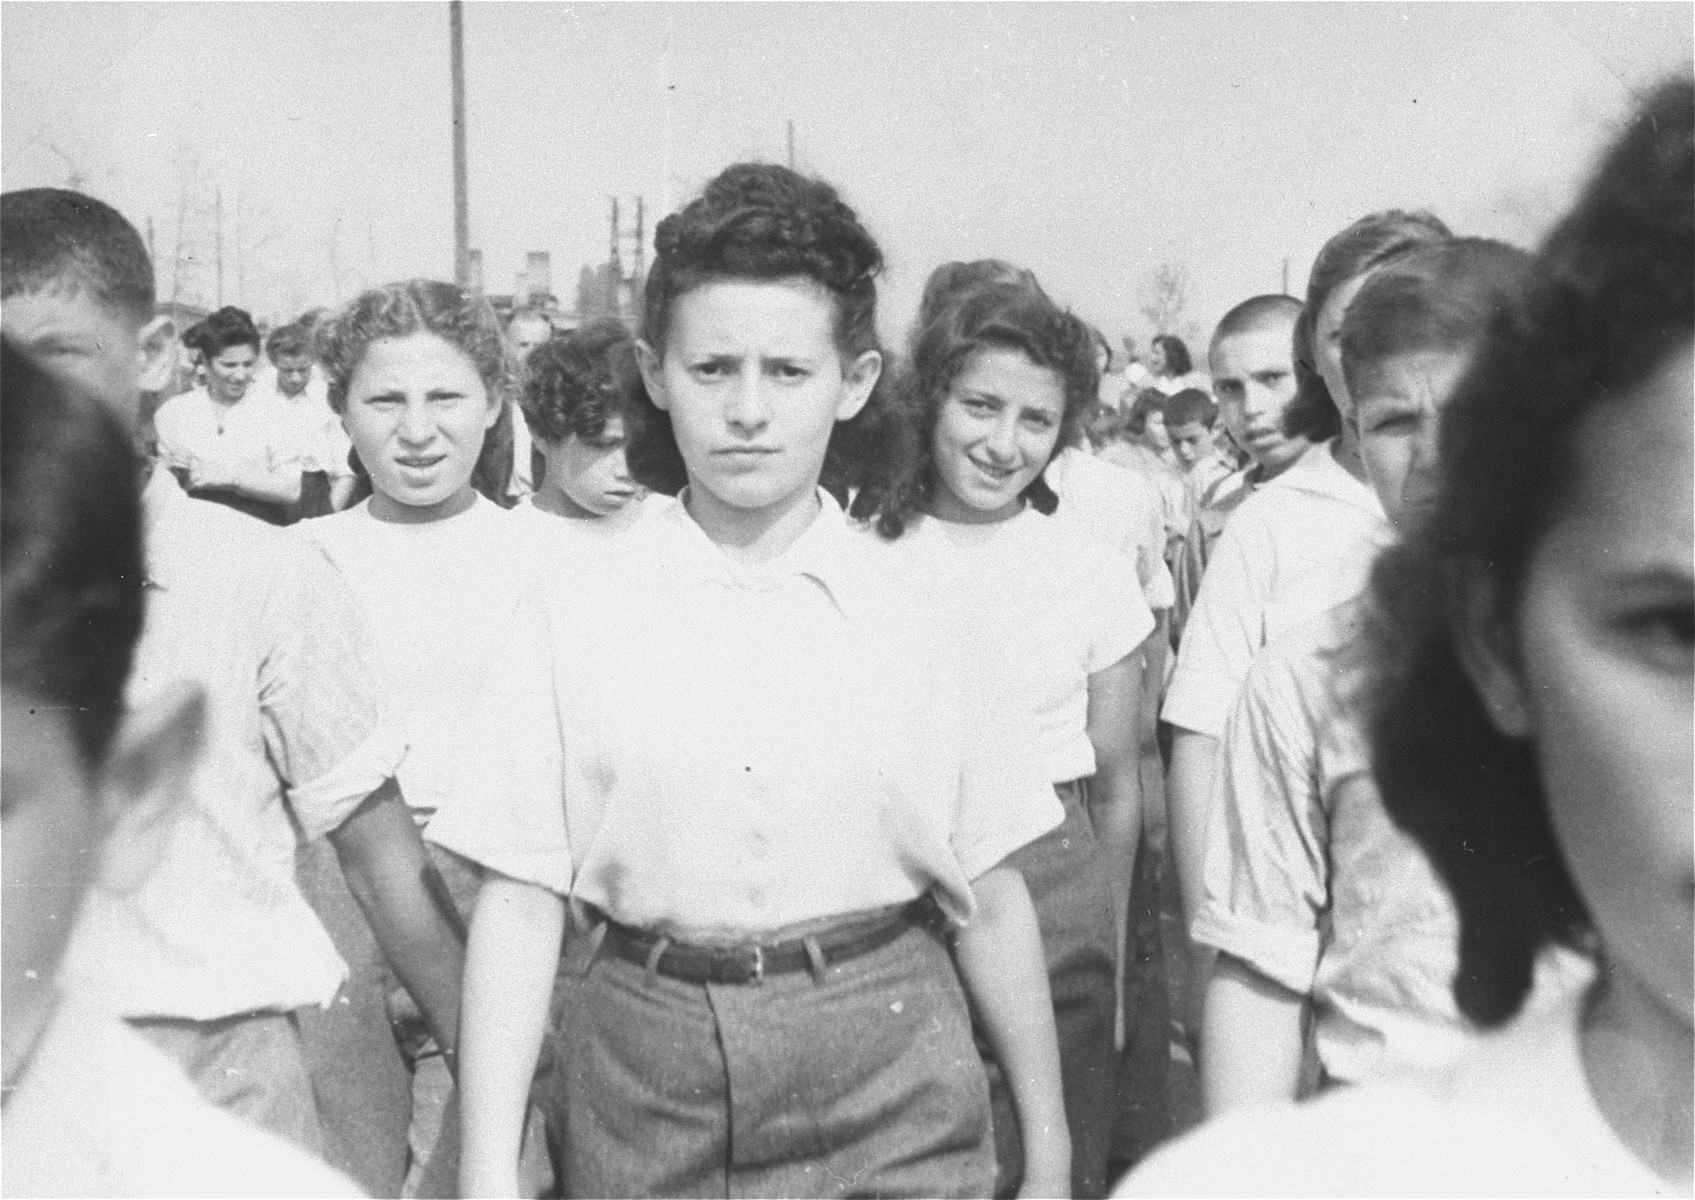 Zionist youth march in a parade in the Zeilsheim displaced persons' camp.